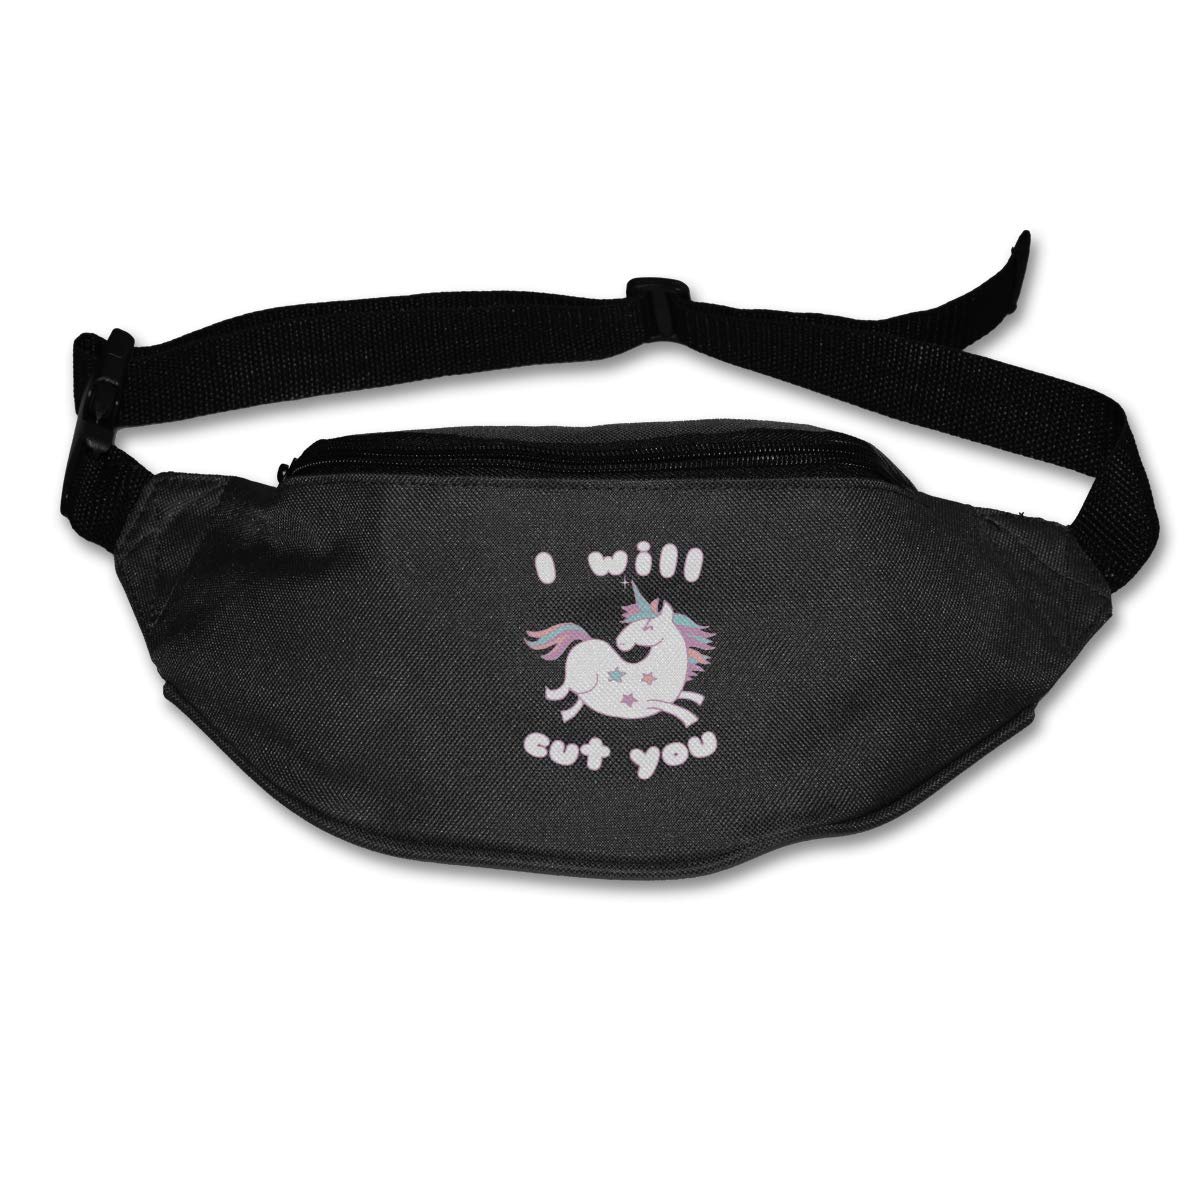 I Will Cut You Unicorn Sport Waist Packs Fanny Pack Adjustable For Hike